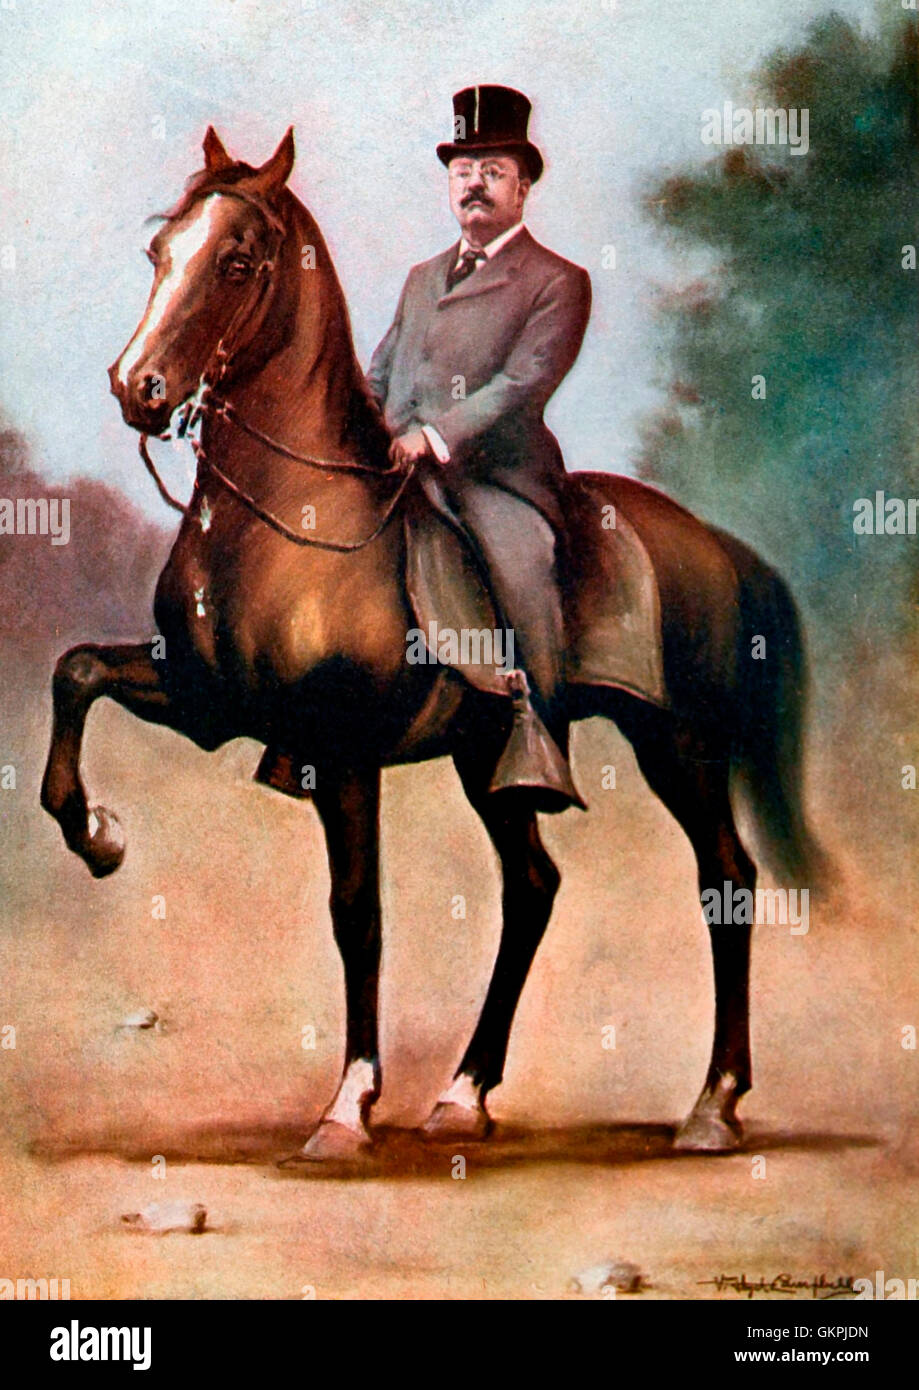 President Theodore Roosevelt. Pastel study by V. Floyd Campbell after a snapshot photograph. Date 1903 - Stock Image